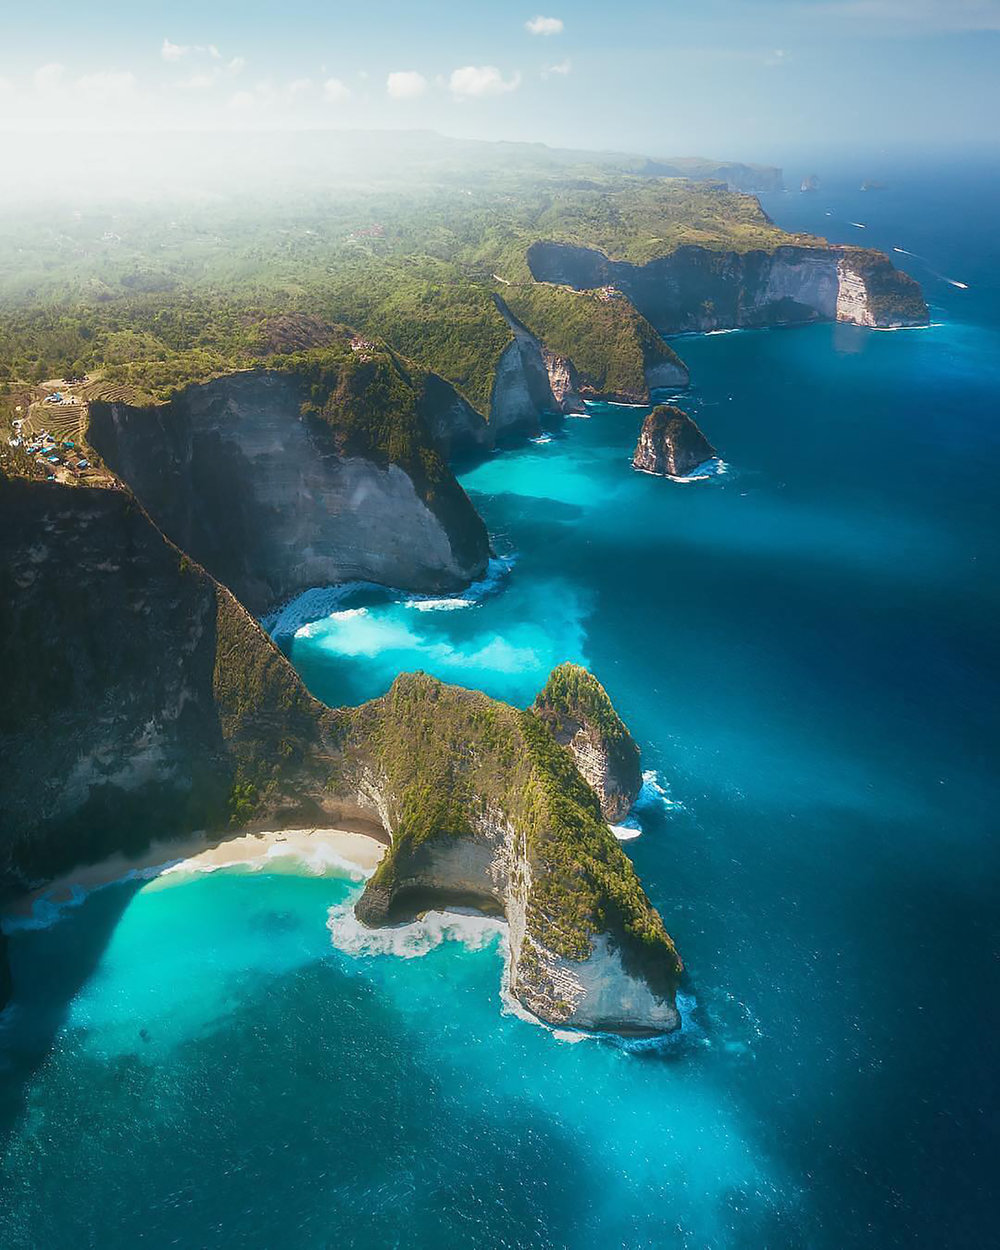 """Check out this breathtaking shot we found on @paradise, which shows the shoreline of Nusa Penida, an island located off the southeastern coast of Bali, Indonesia. Nusa Penida, along with the neighboring Lembongan and Ceningan islands, serves as an unofficial bird sanctuary for numbers of endangered Balinese and Indonesian bird species, most notably the Bali Starlin.  8°44'00.0""""S, 115°32'00.0""""E  Source imagery: Karl 'Shakur' Ndieli"""